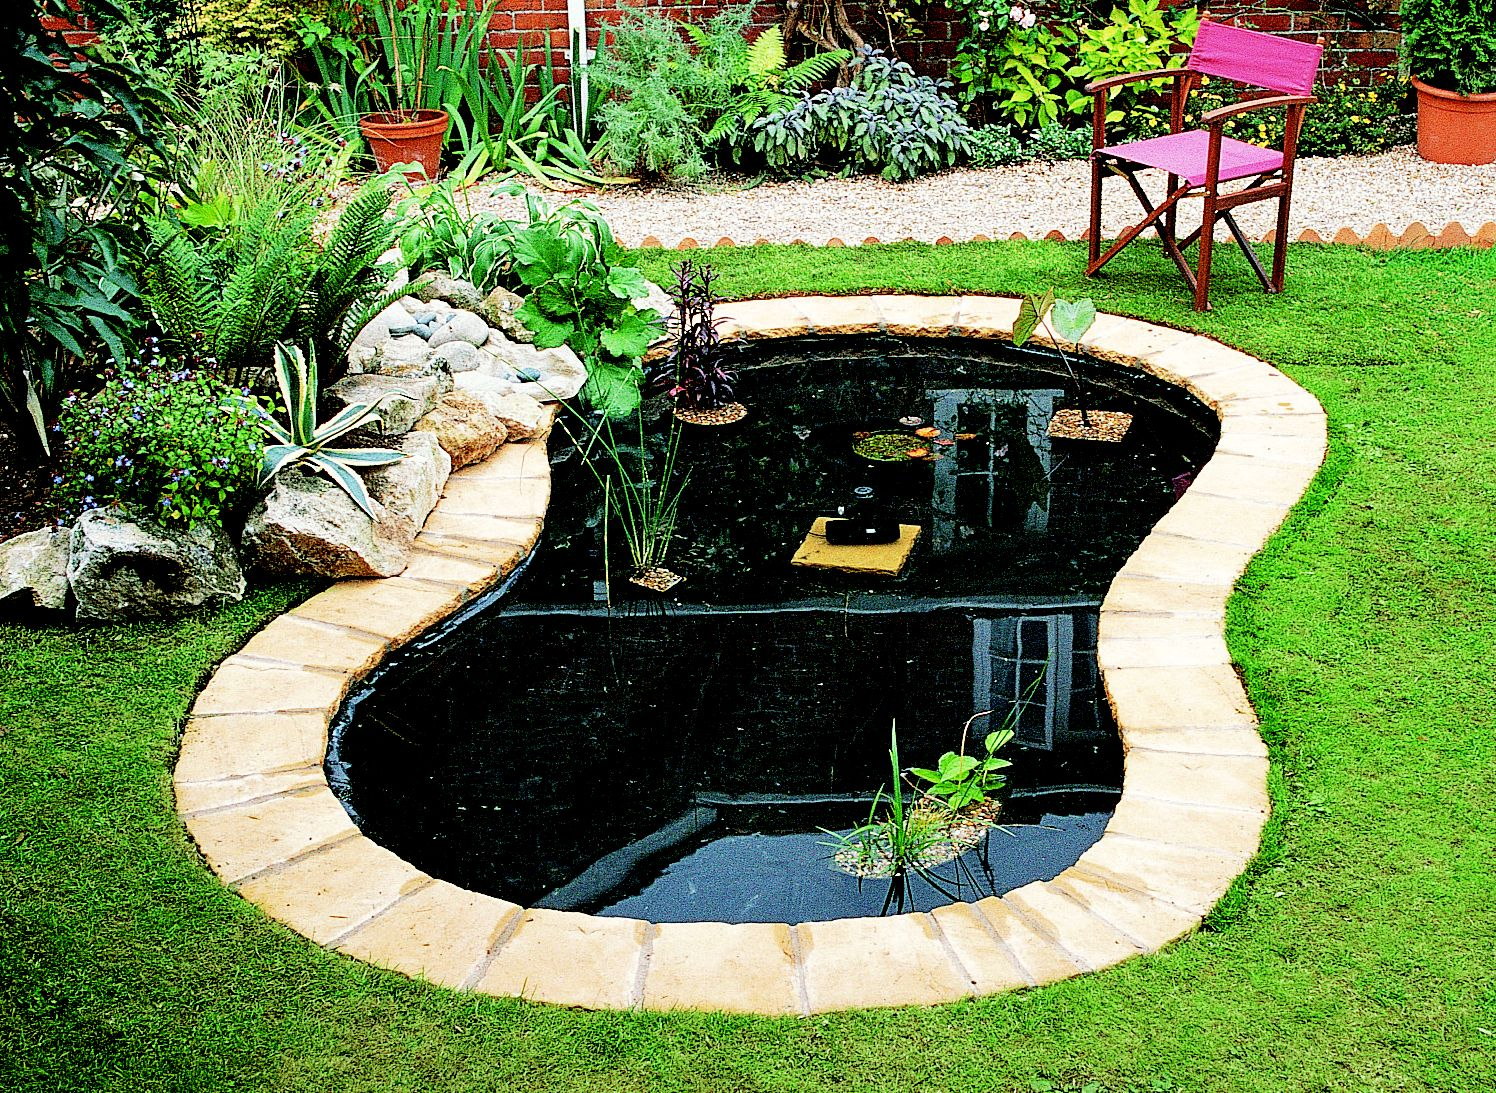 How to create a pond | Ideas & Advice | DIY at B&Q